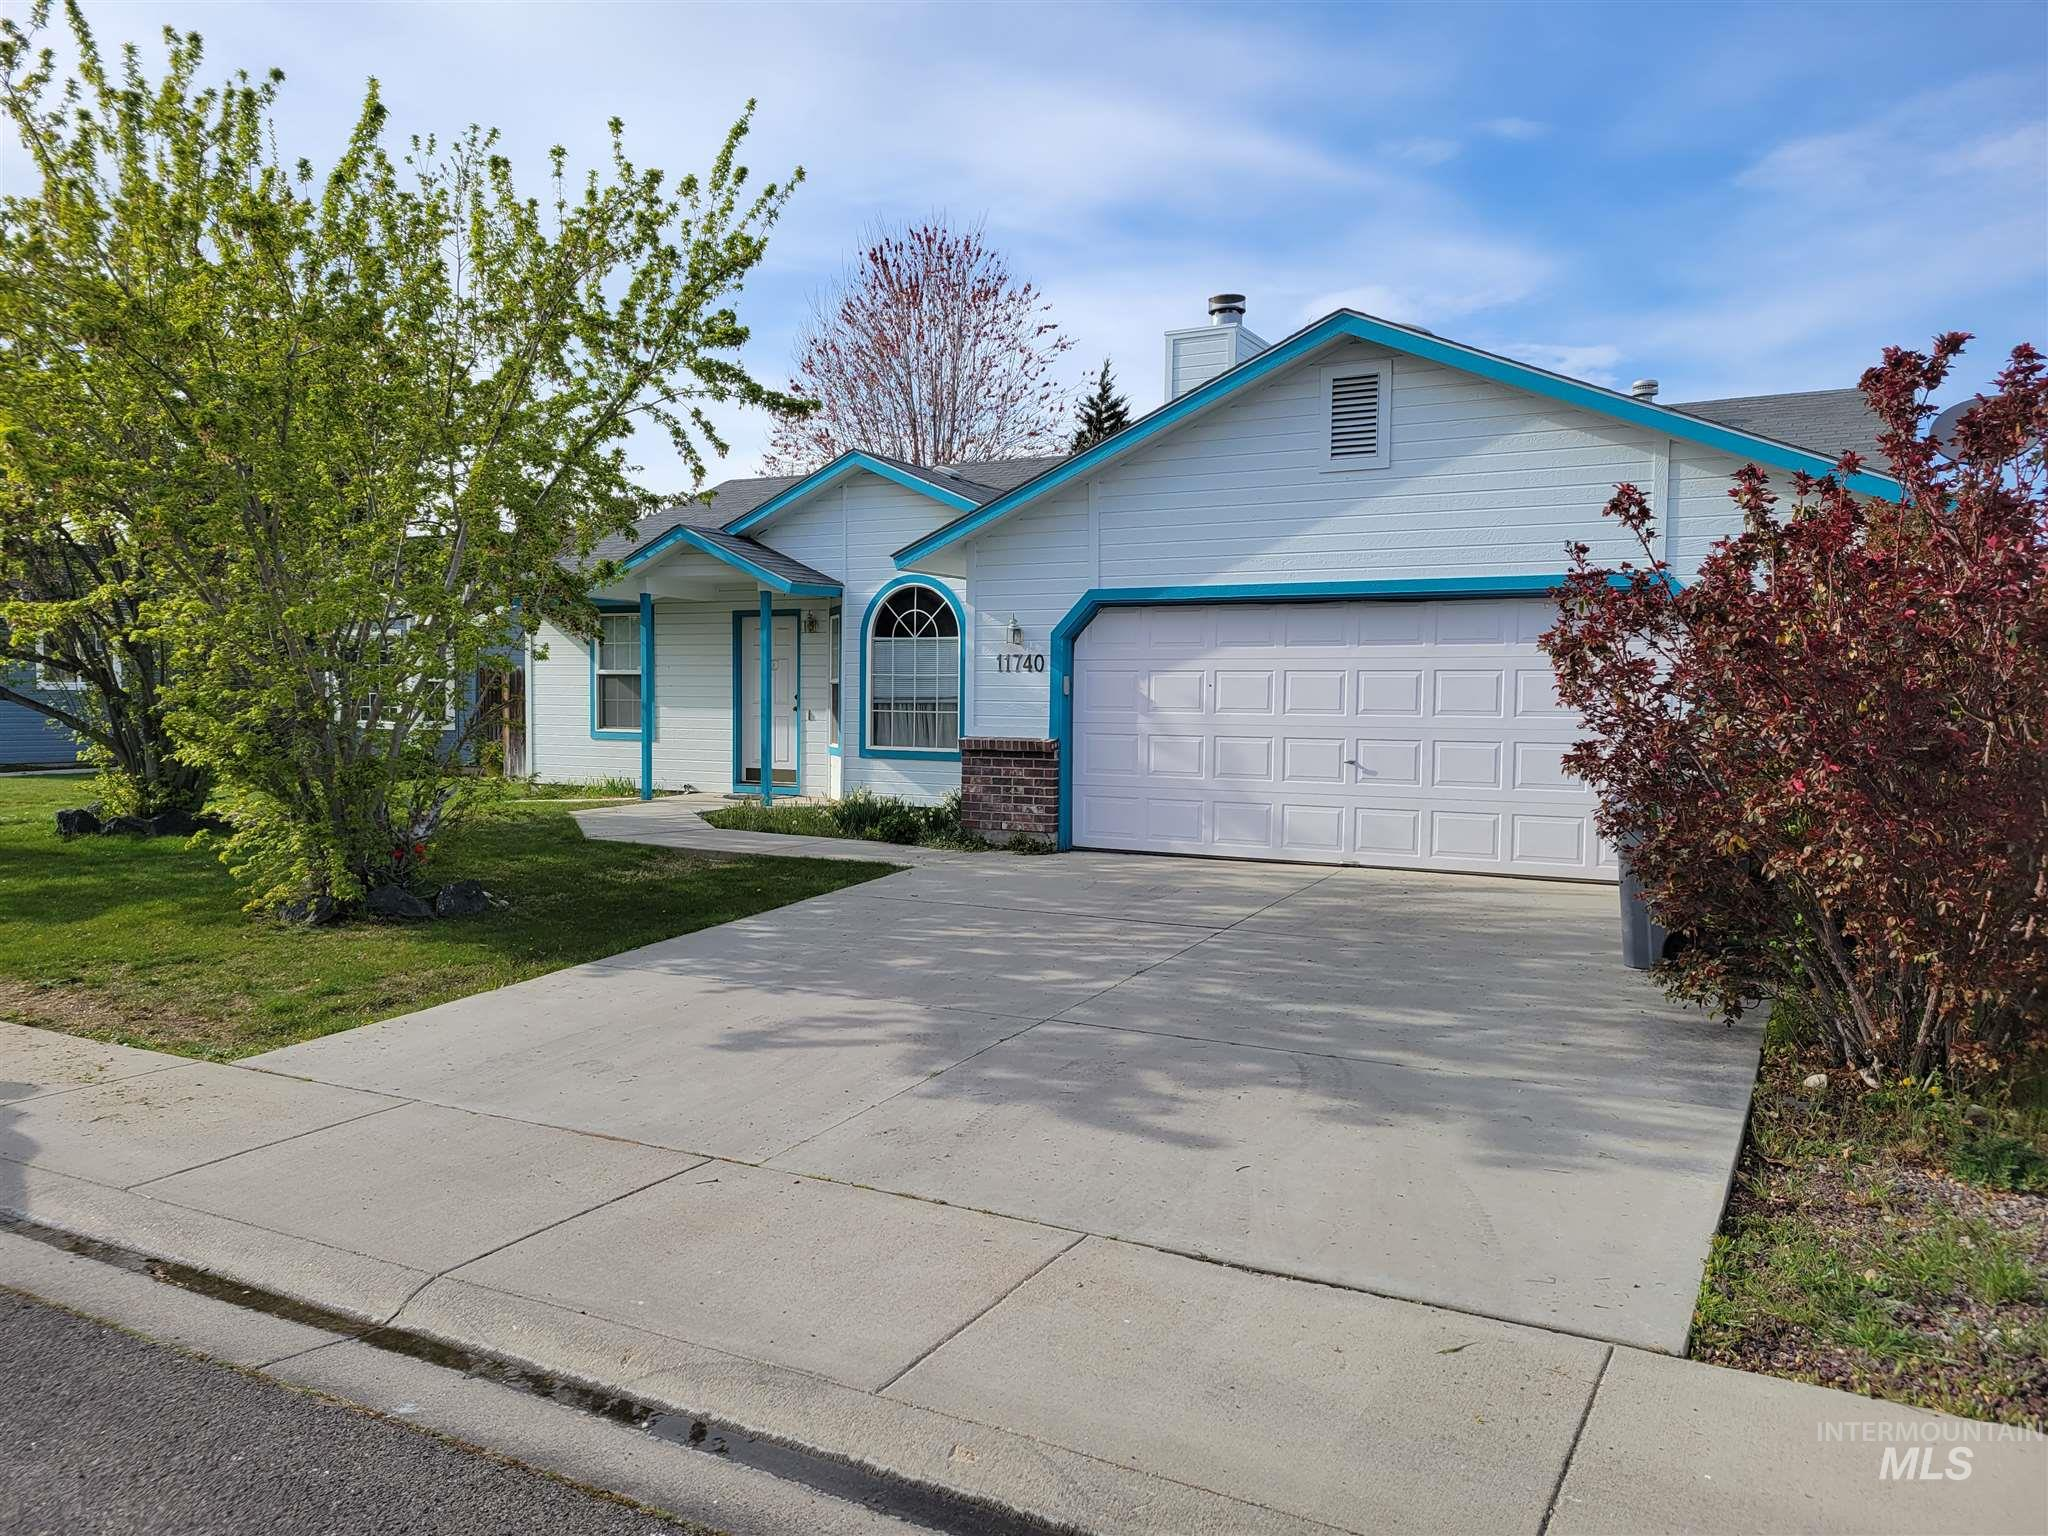 11740 W Gabrielle Ct Property Photo - Boise, ID real estate listing